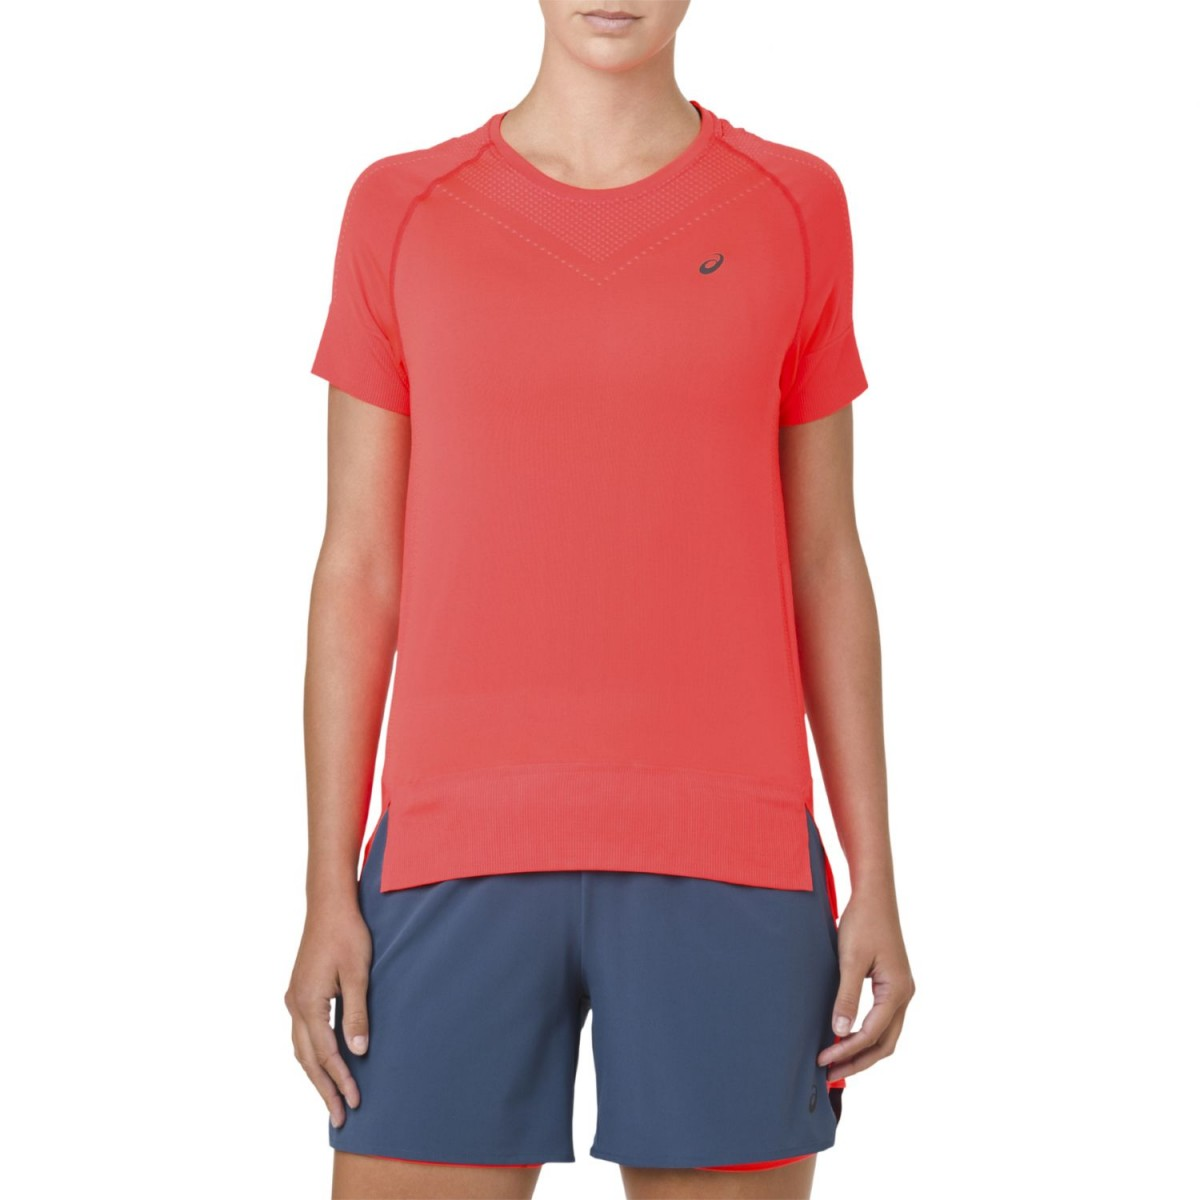 Asics Seamless Short Sleeve Running Top